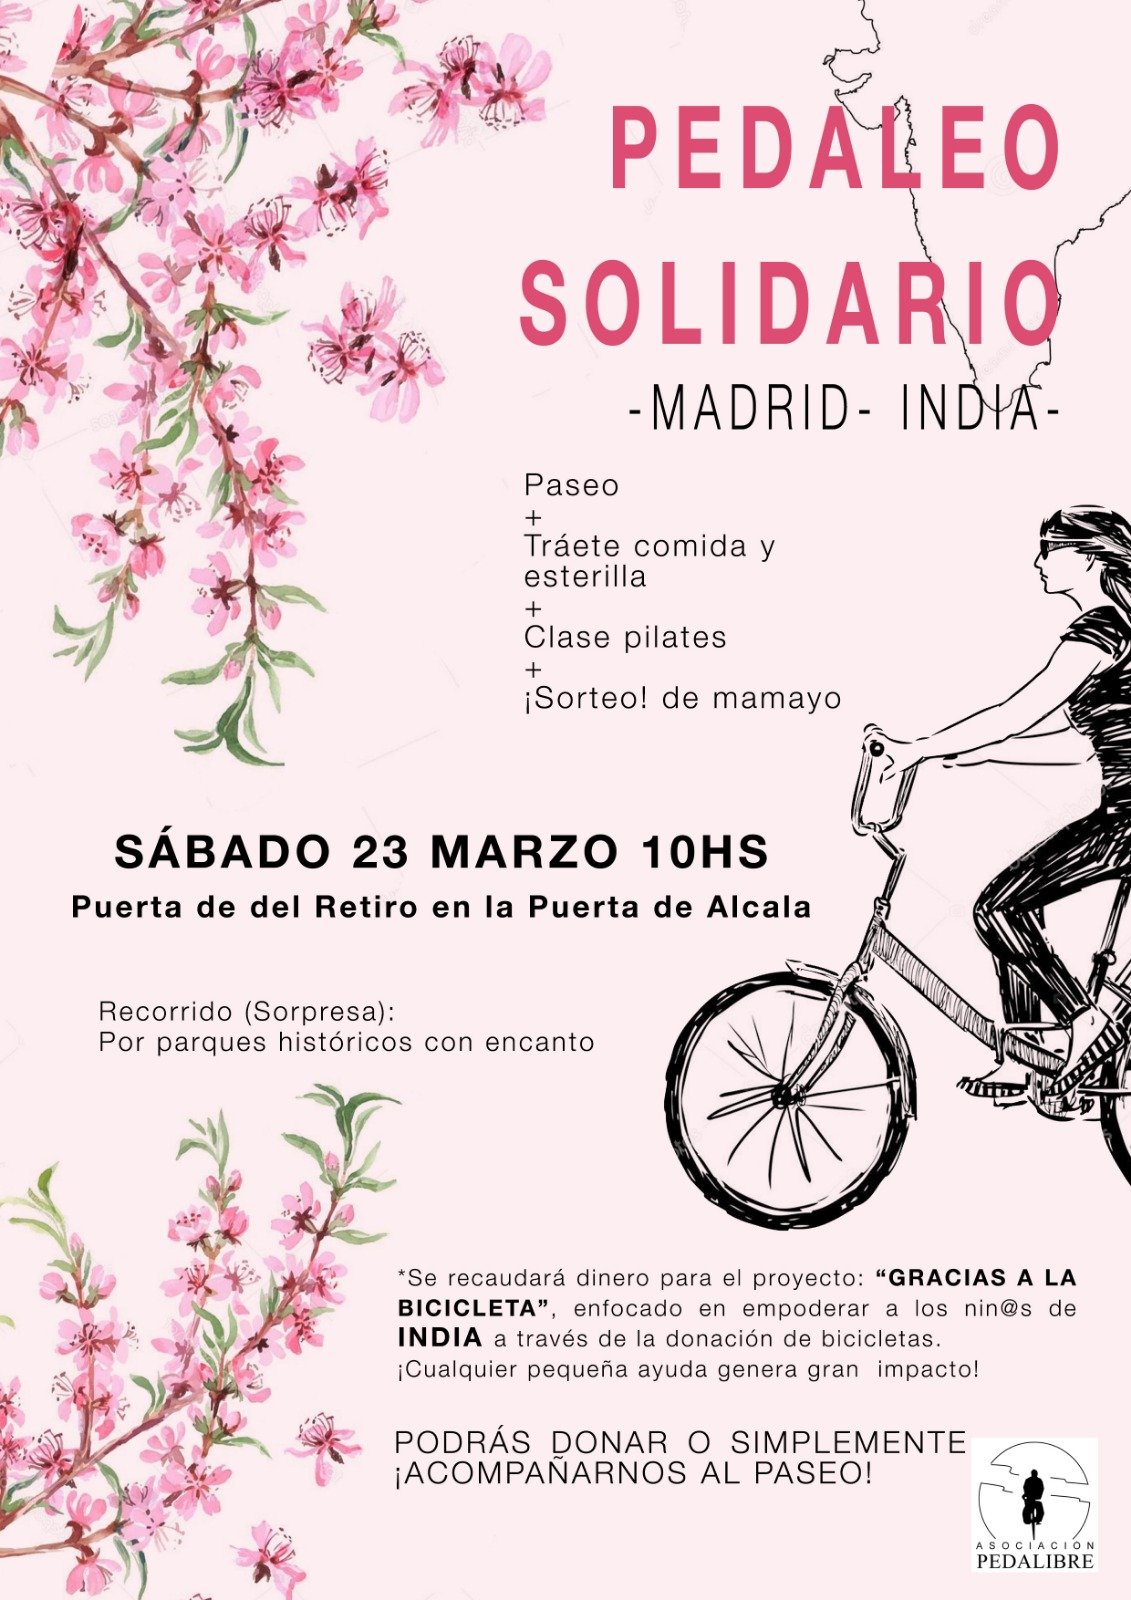 Pedaleo solidario Madrid – India